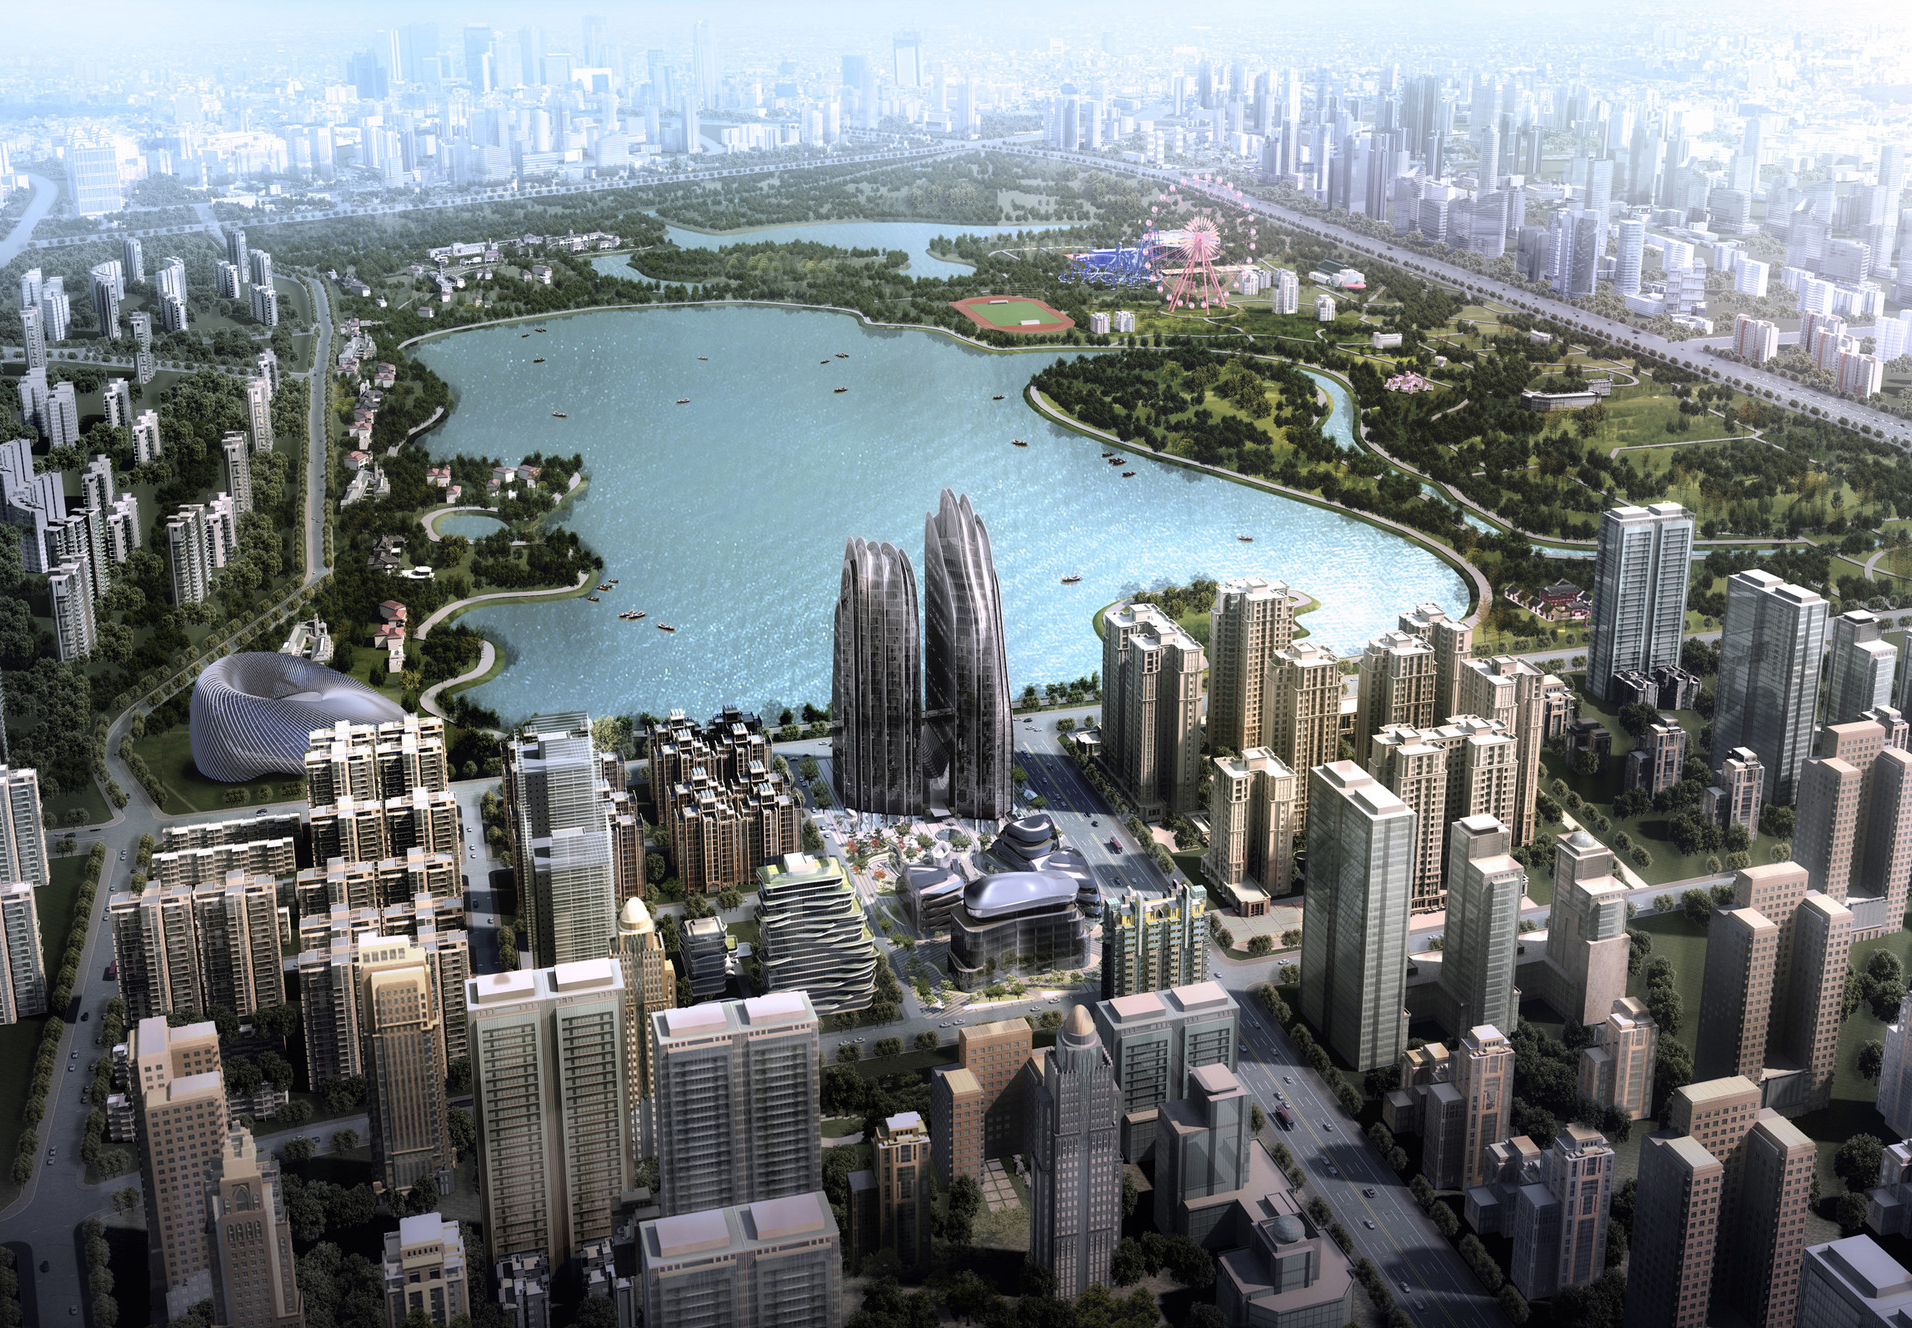 01_MAD_birdbiew_of_Chaoyang_Project_1.jpg